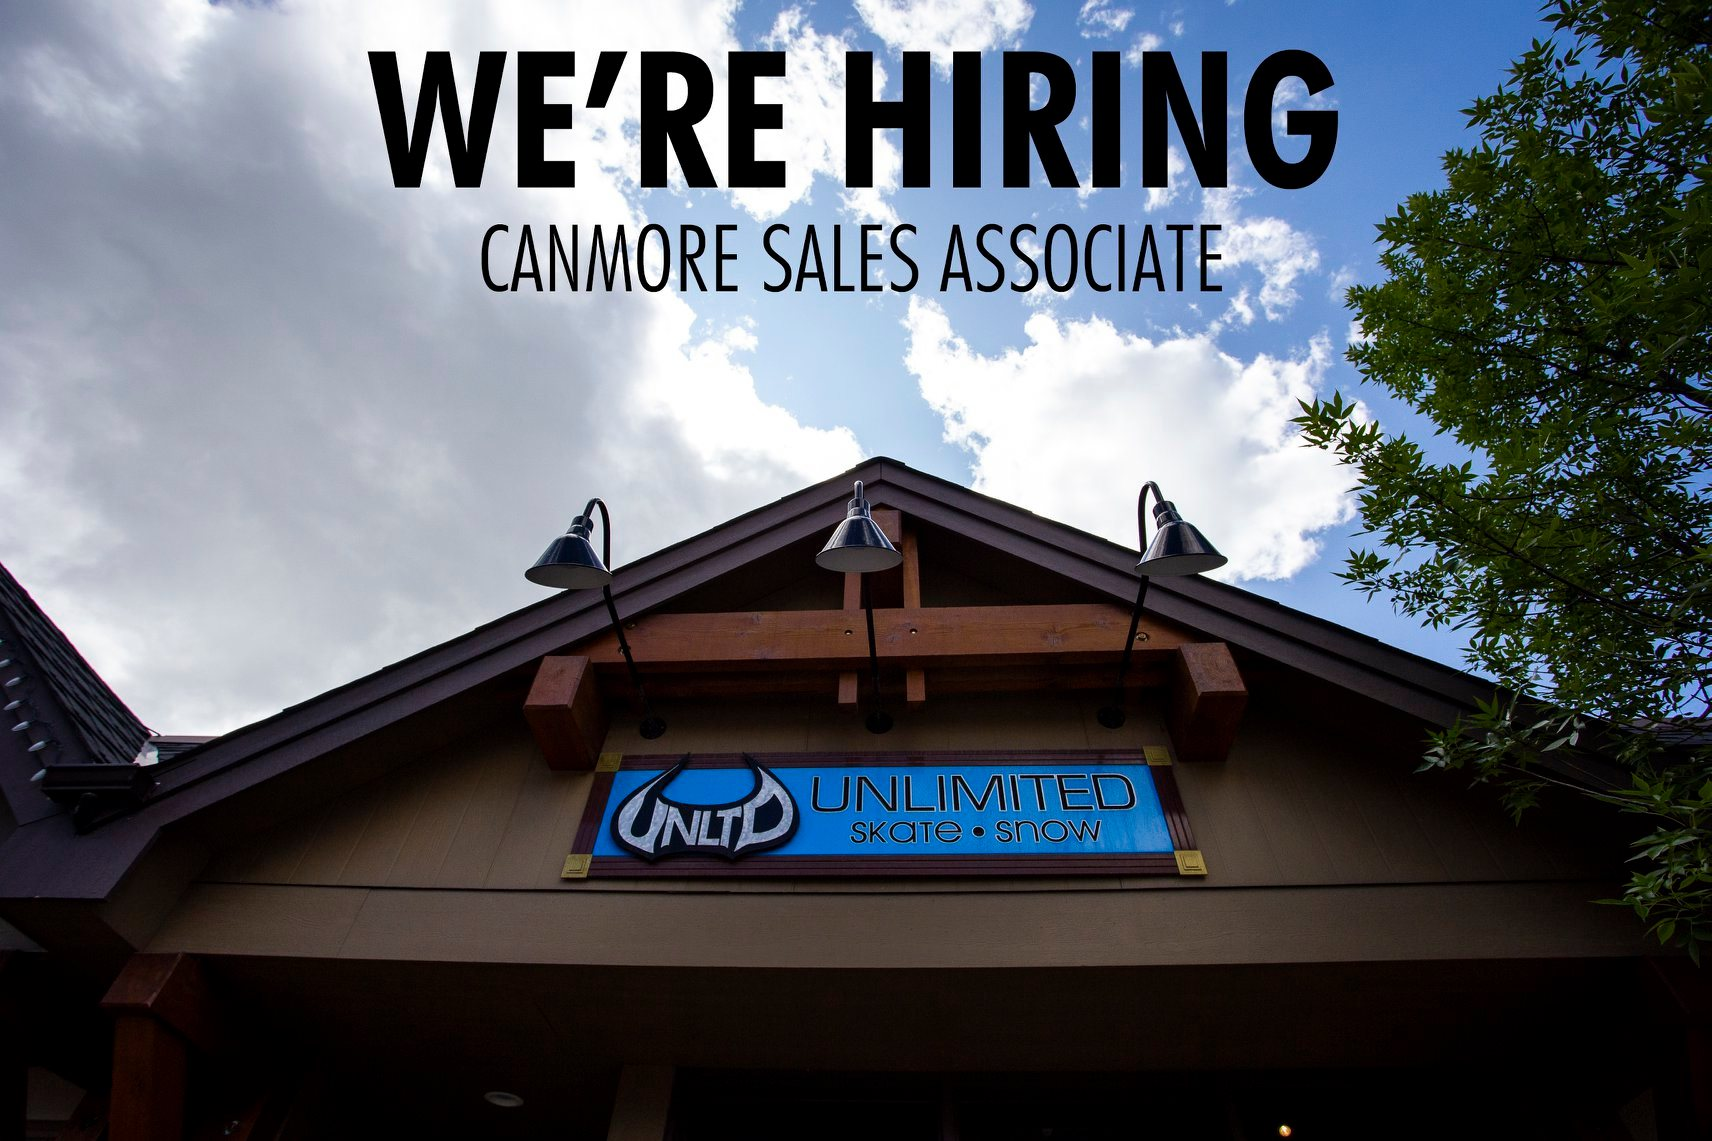 We're Hiring - Canmore Sales Associate